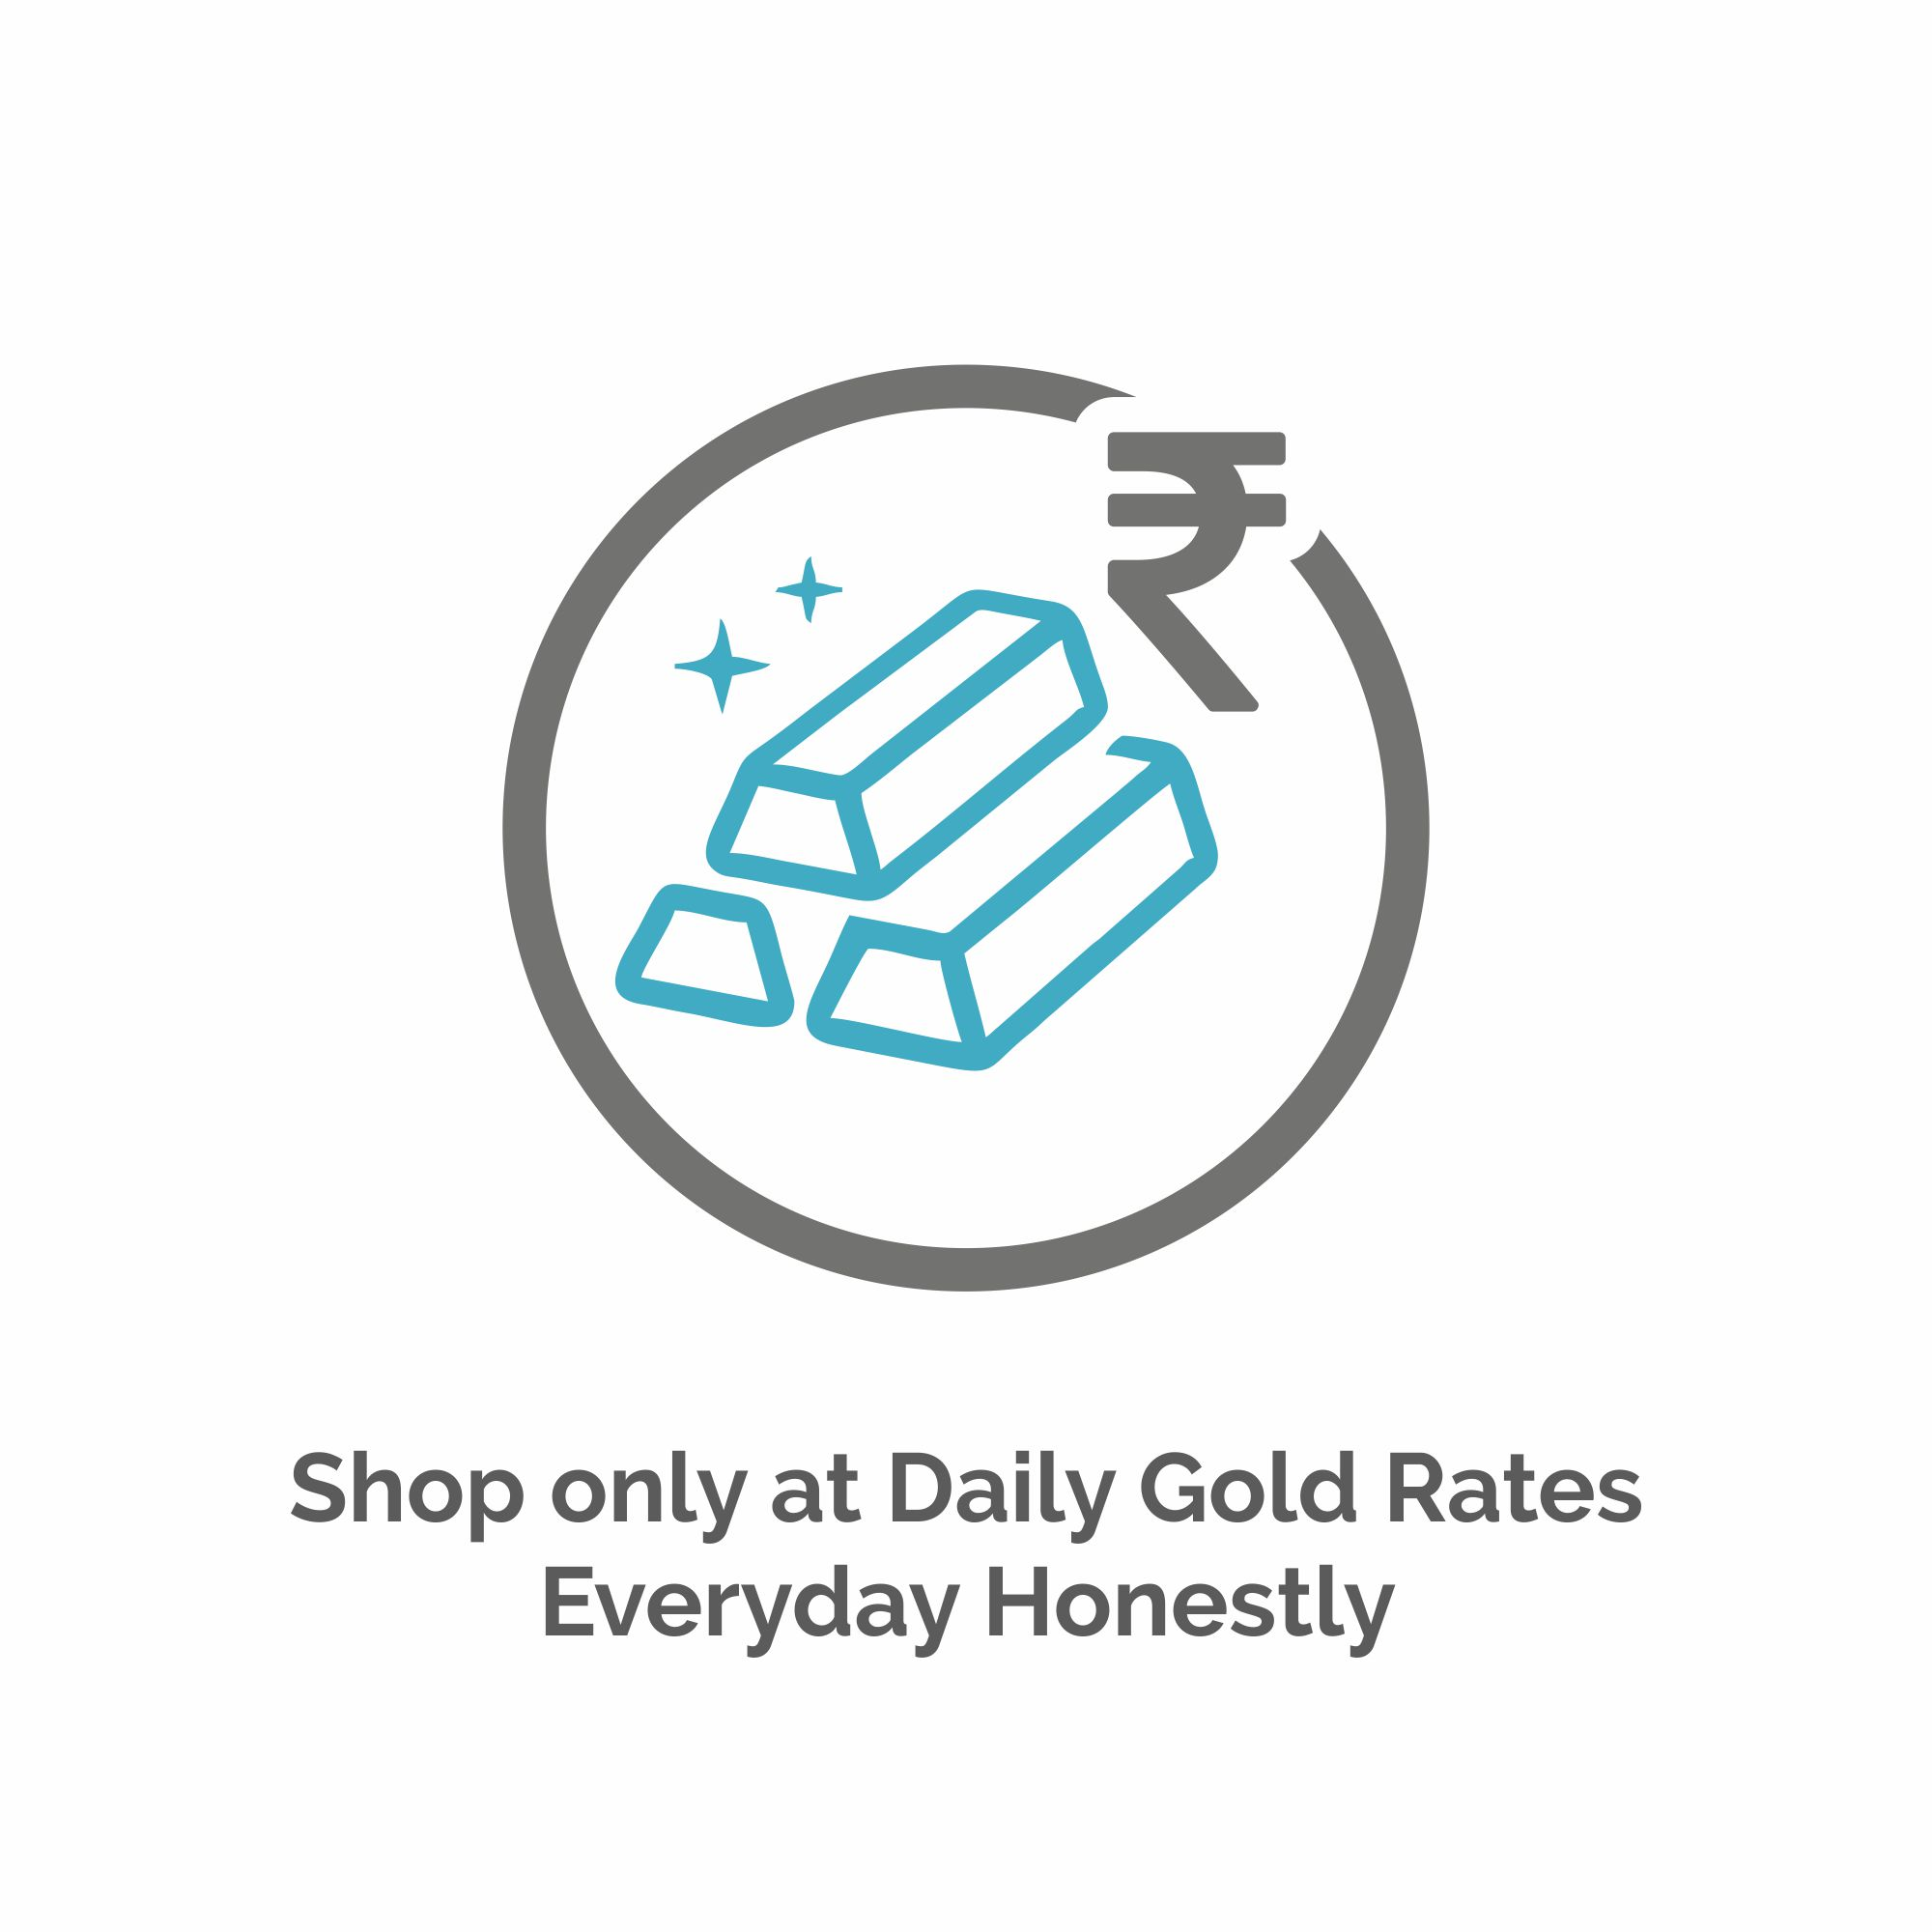 Shop only at Daily Gold Rates - Everyday Honestly..